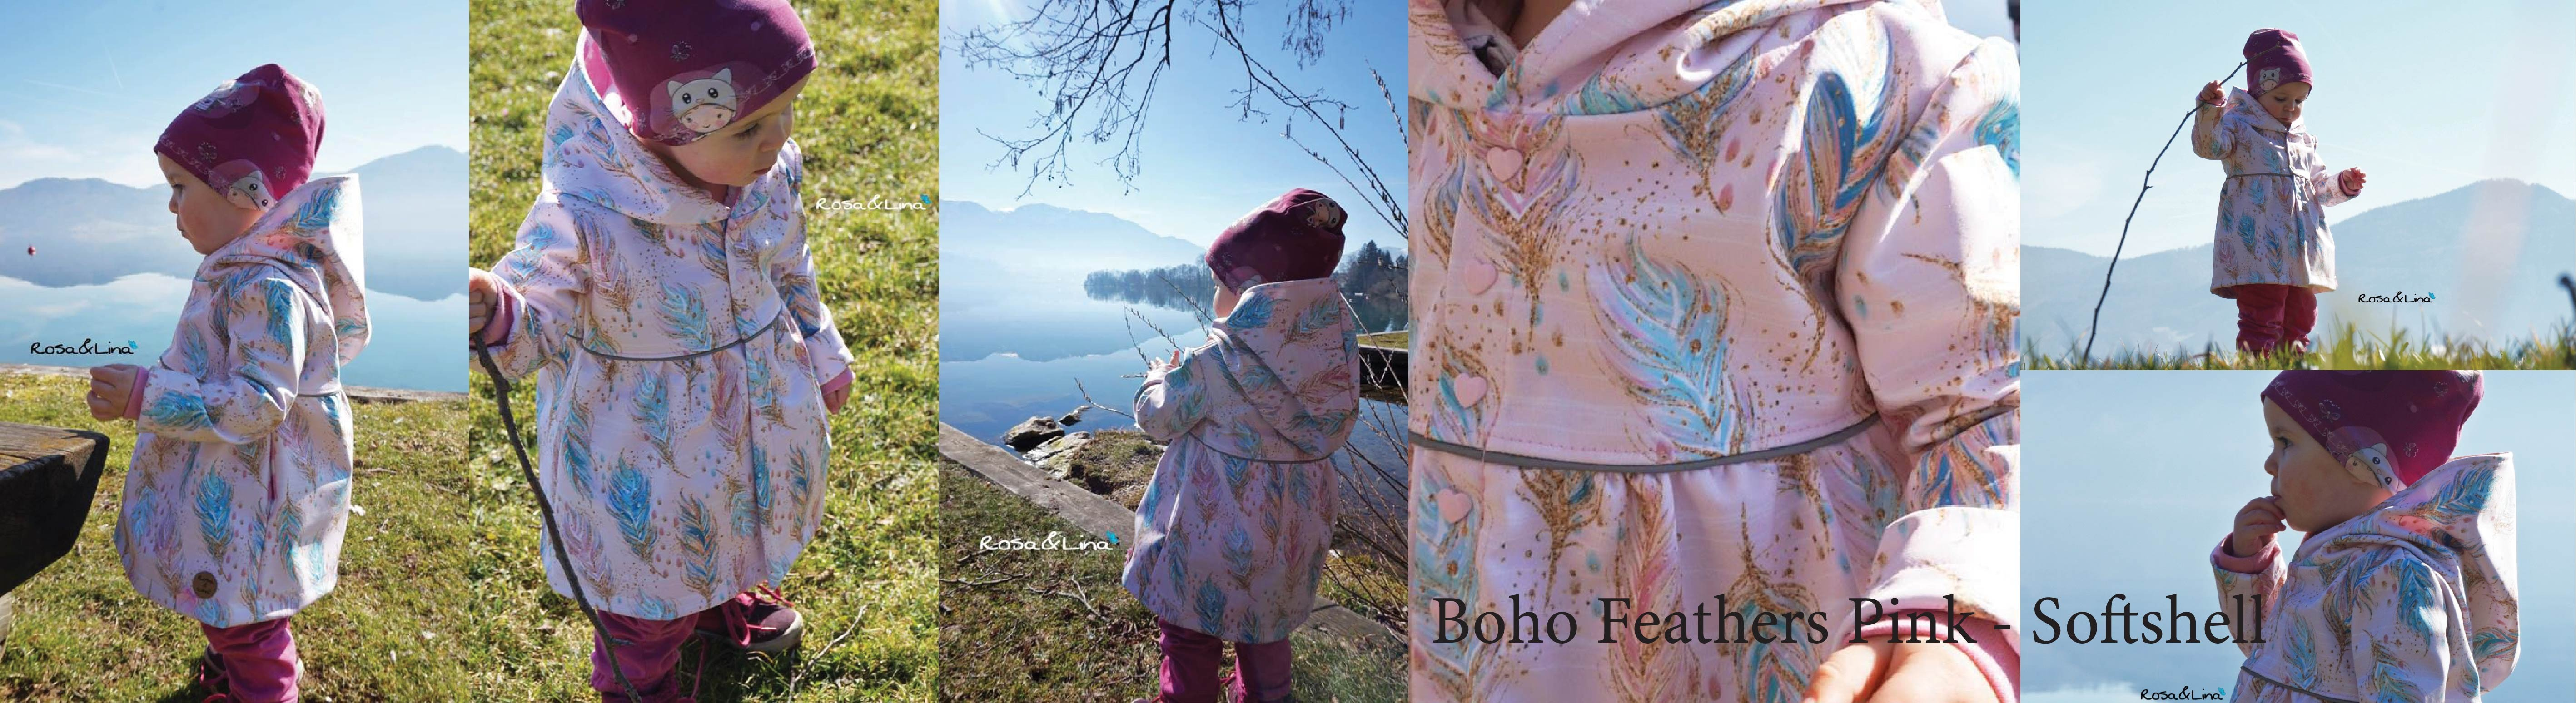 Boho Feathers on pink - Softshell